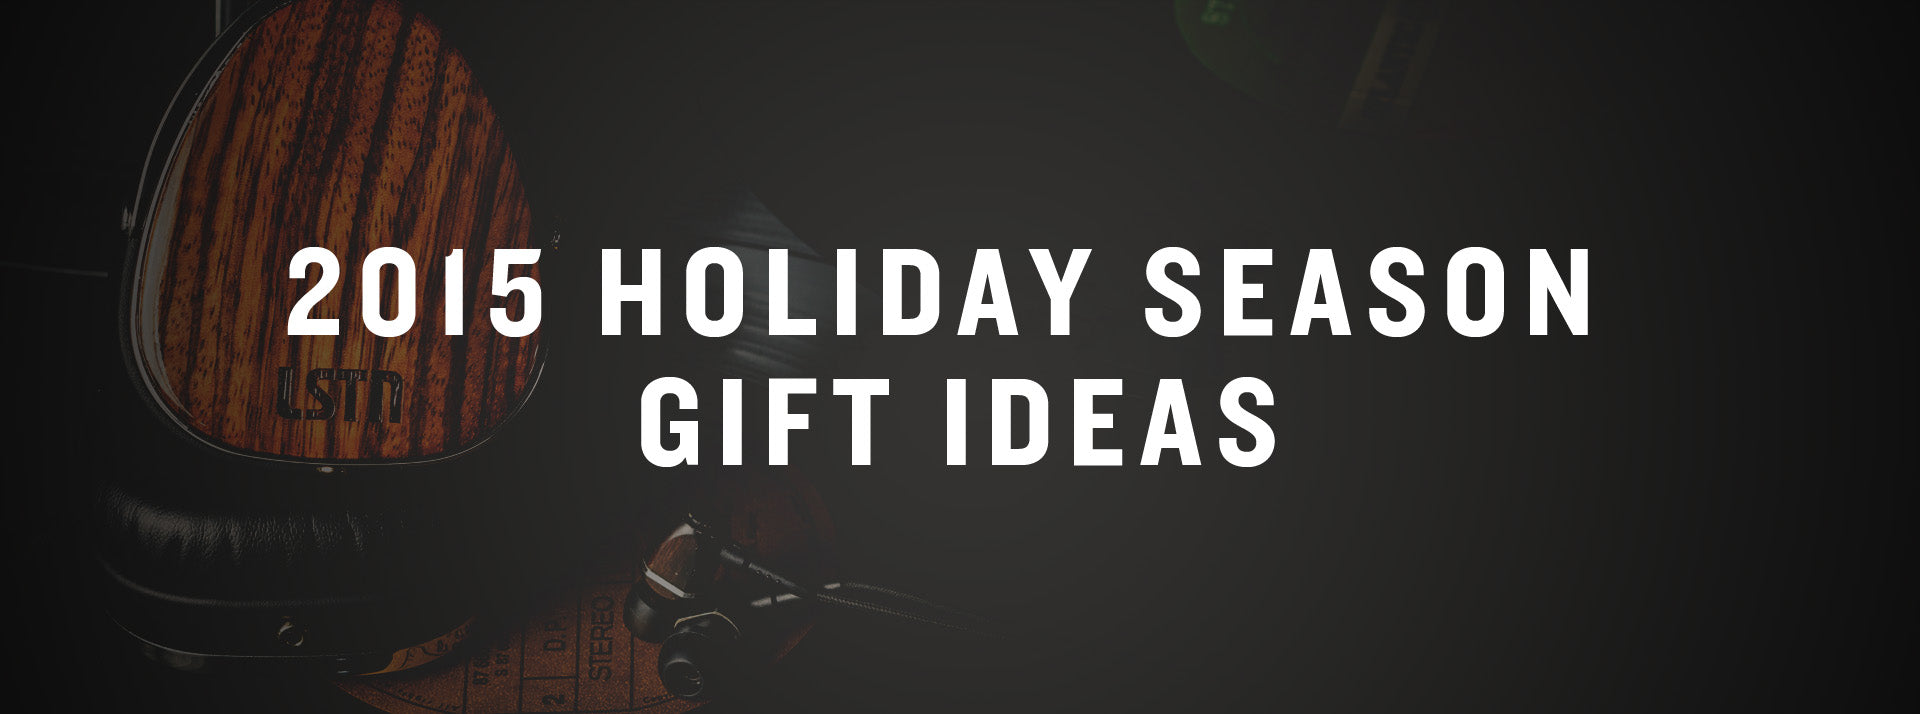 2015 holiday gift ideas lstn headphones, bluetooth speakers and wood earbuds